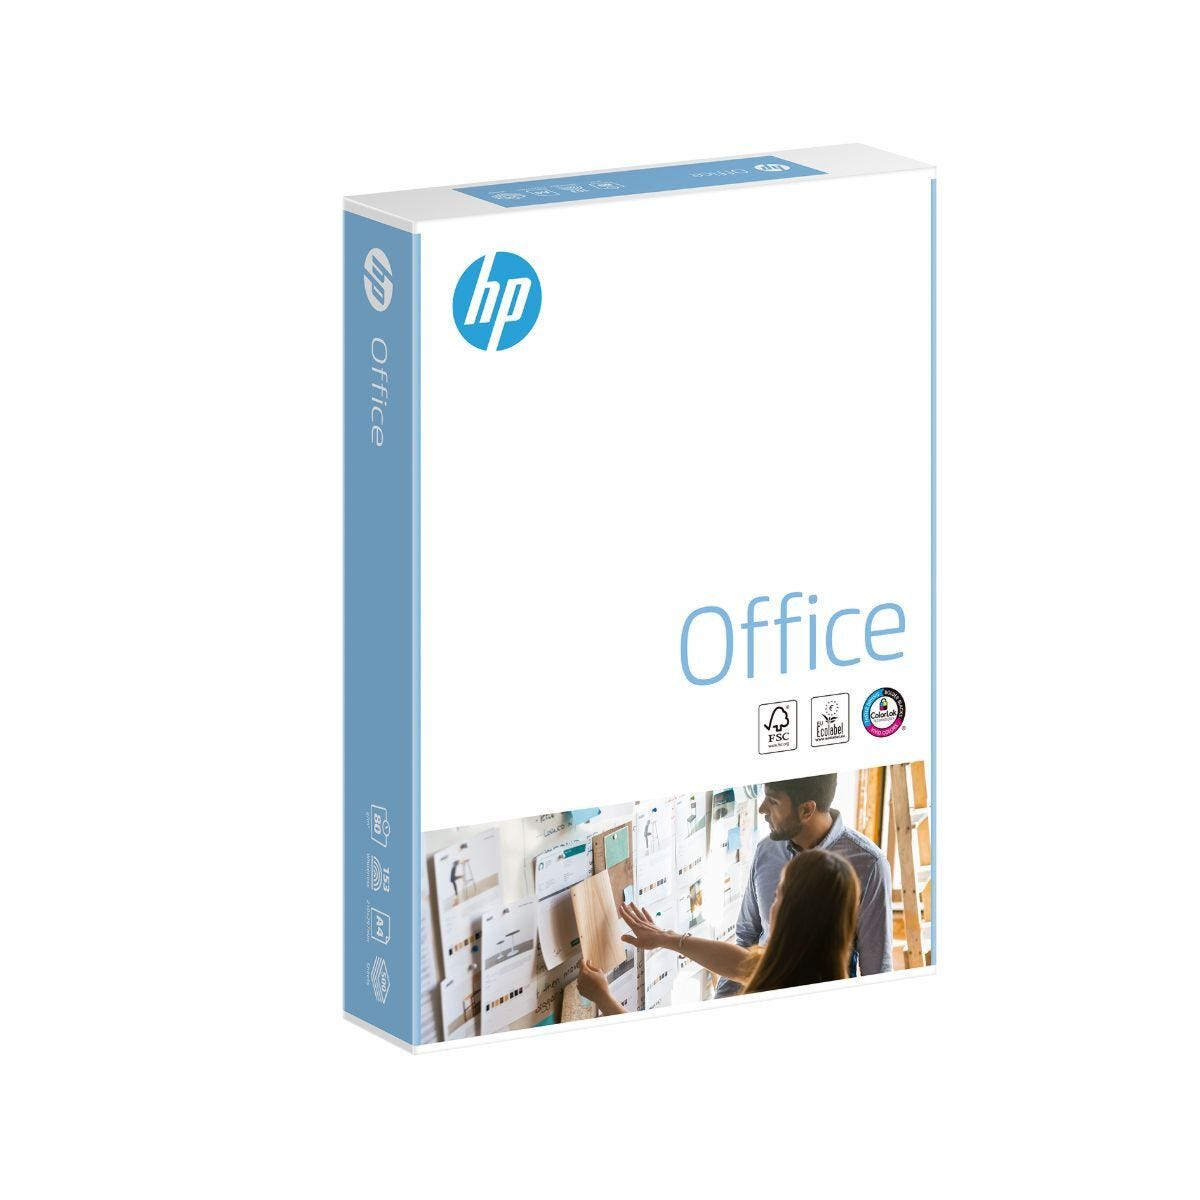 HP Office Paper A4 80gsm Box of 5 Reams